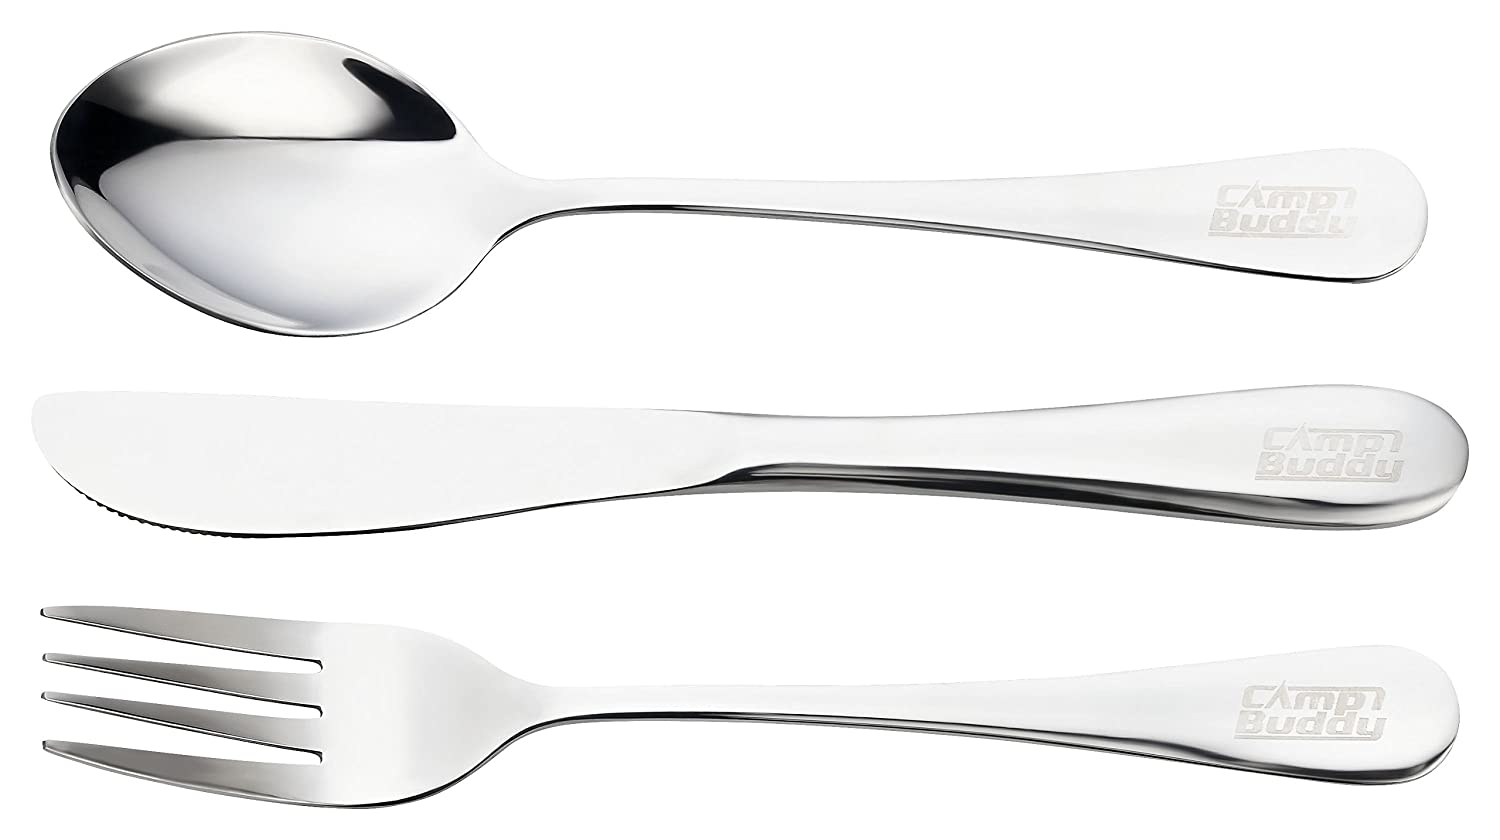 CampBuddy cutlery set two pieces Stainless steel